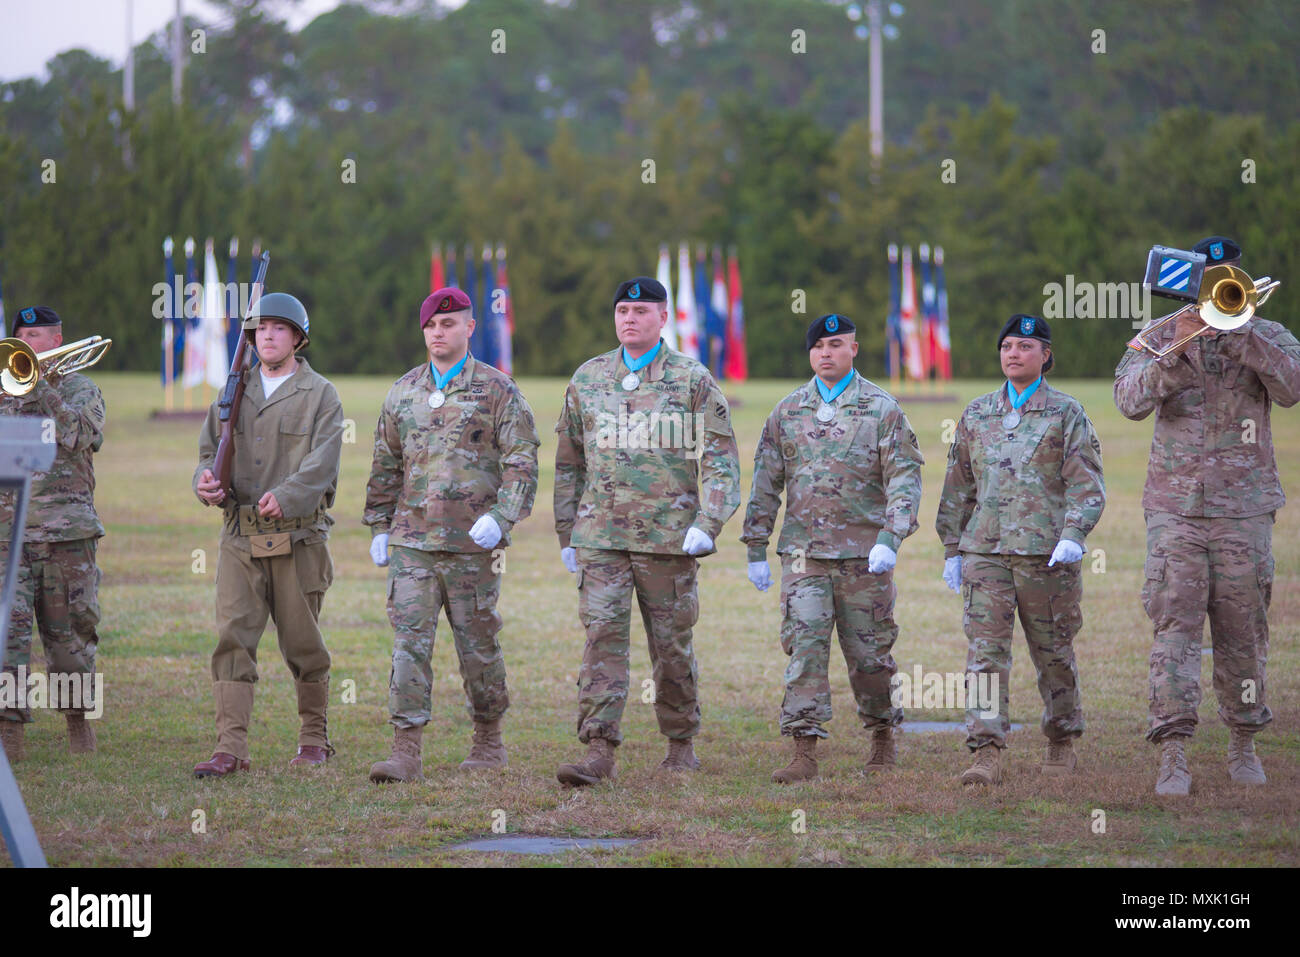 Members of the 3rd Infantry Division Audie Murphy Club participate in the Twilight Tattoo ceremony at Fort Stewart Nov. 15, 2016 during Marne Week. Twilight Tattoo is a ceremony honoring veterans and family members. (Photo by LTC Brian J. Fickel) - Stock Image